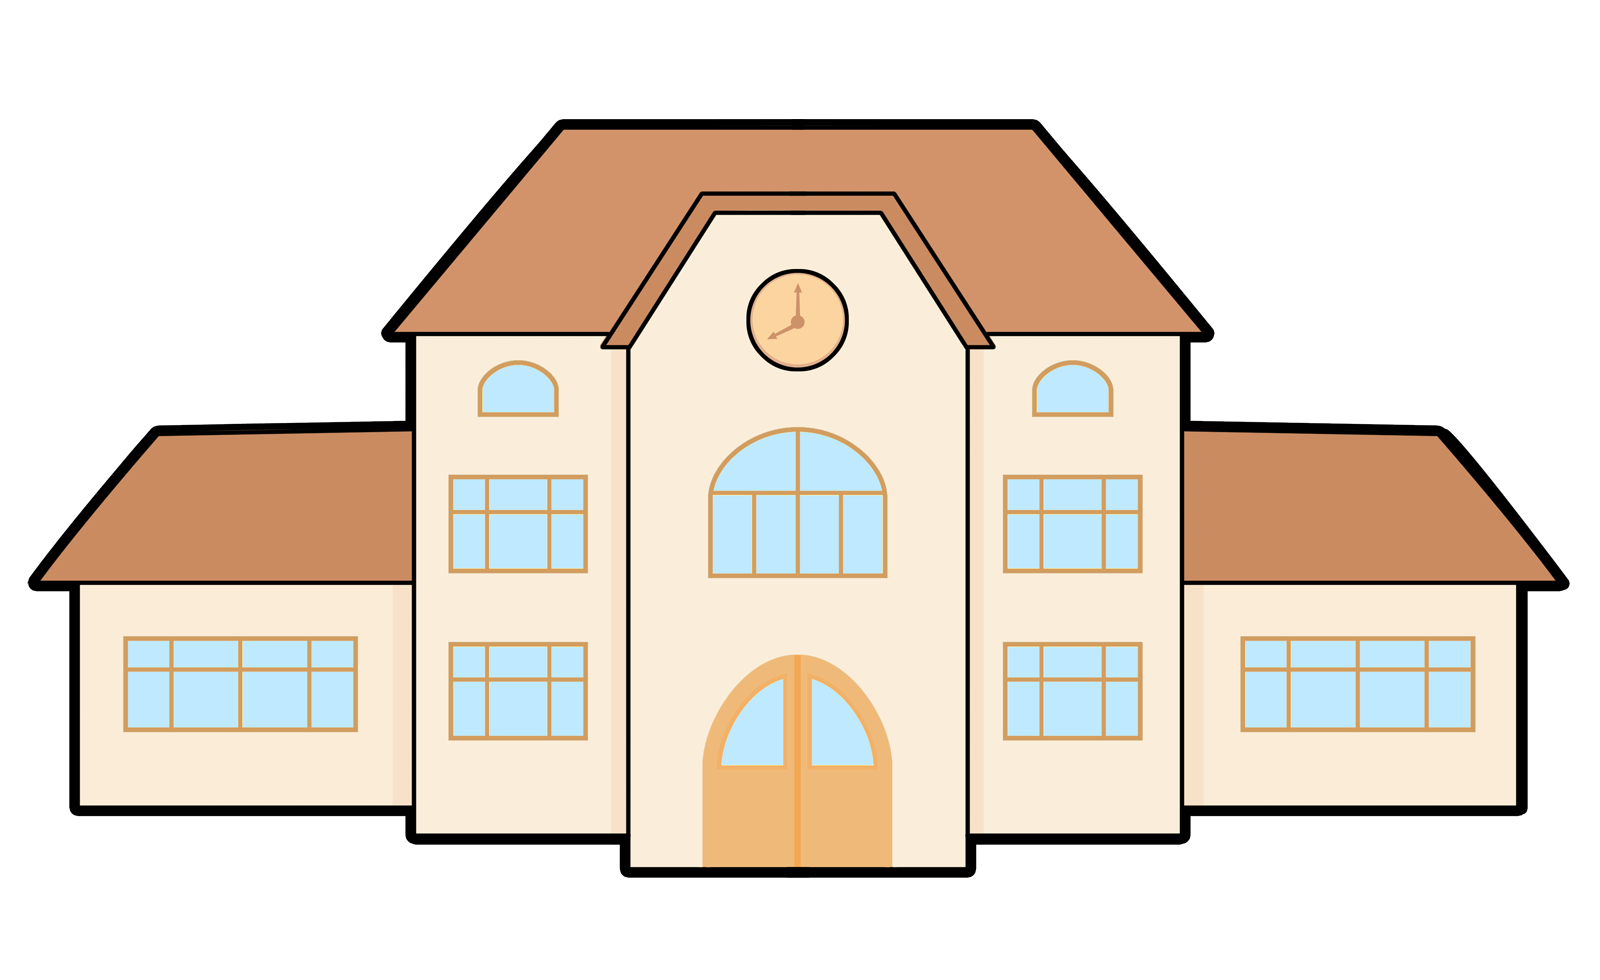 school building clip art education iconography pinterest rh pinterest com building clip art free downloads building clip art free downloads